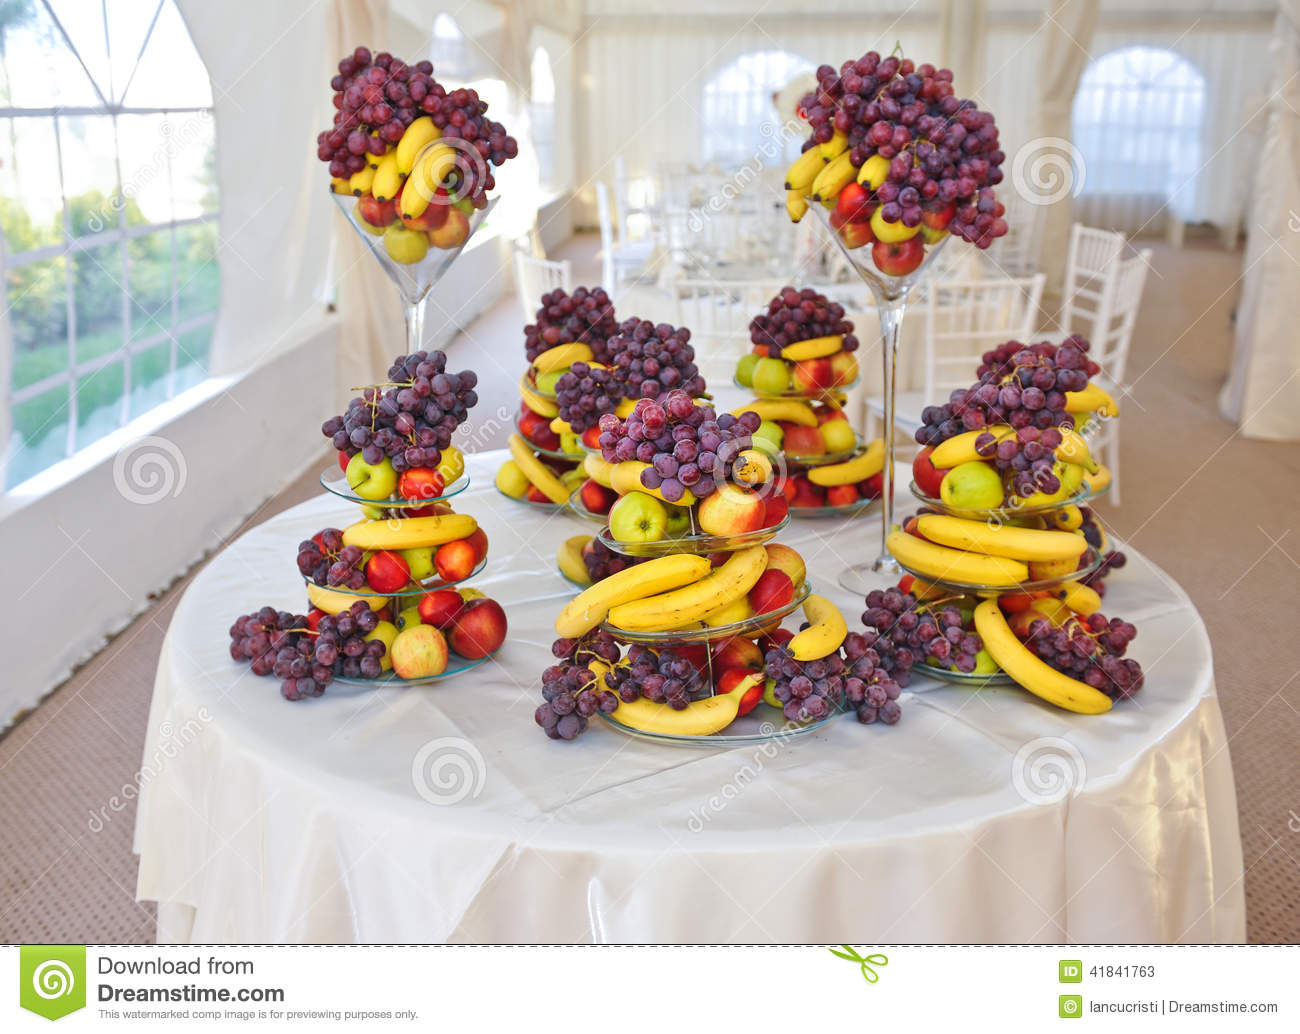 wedding decoration with fruits bananas grapes and apples stock image image of decoration. Black Bedroom Furniture Sets. Home Design Ideas